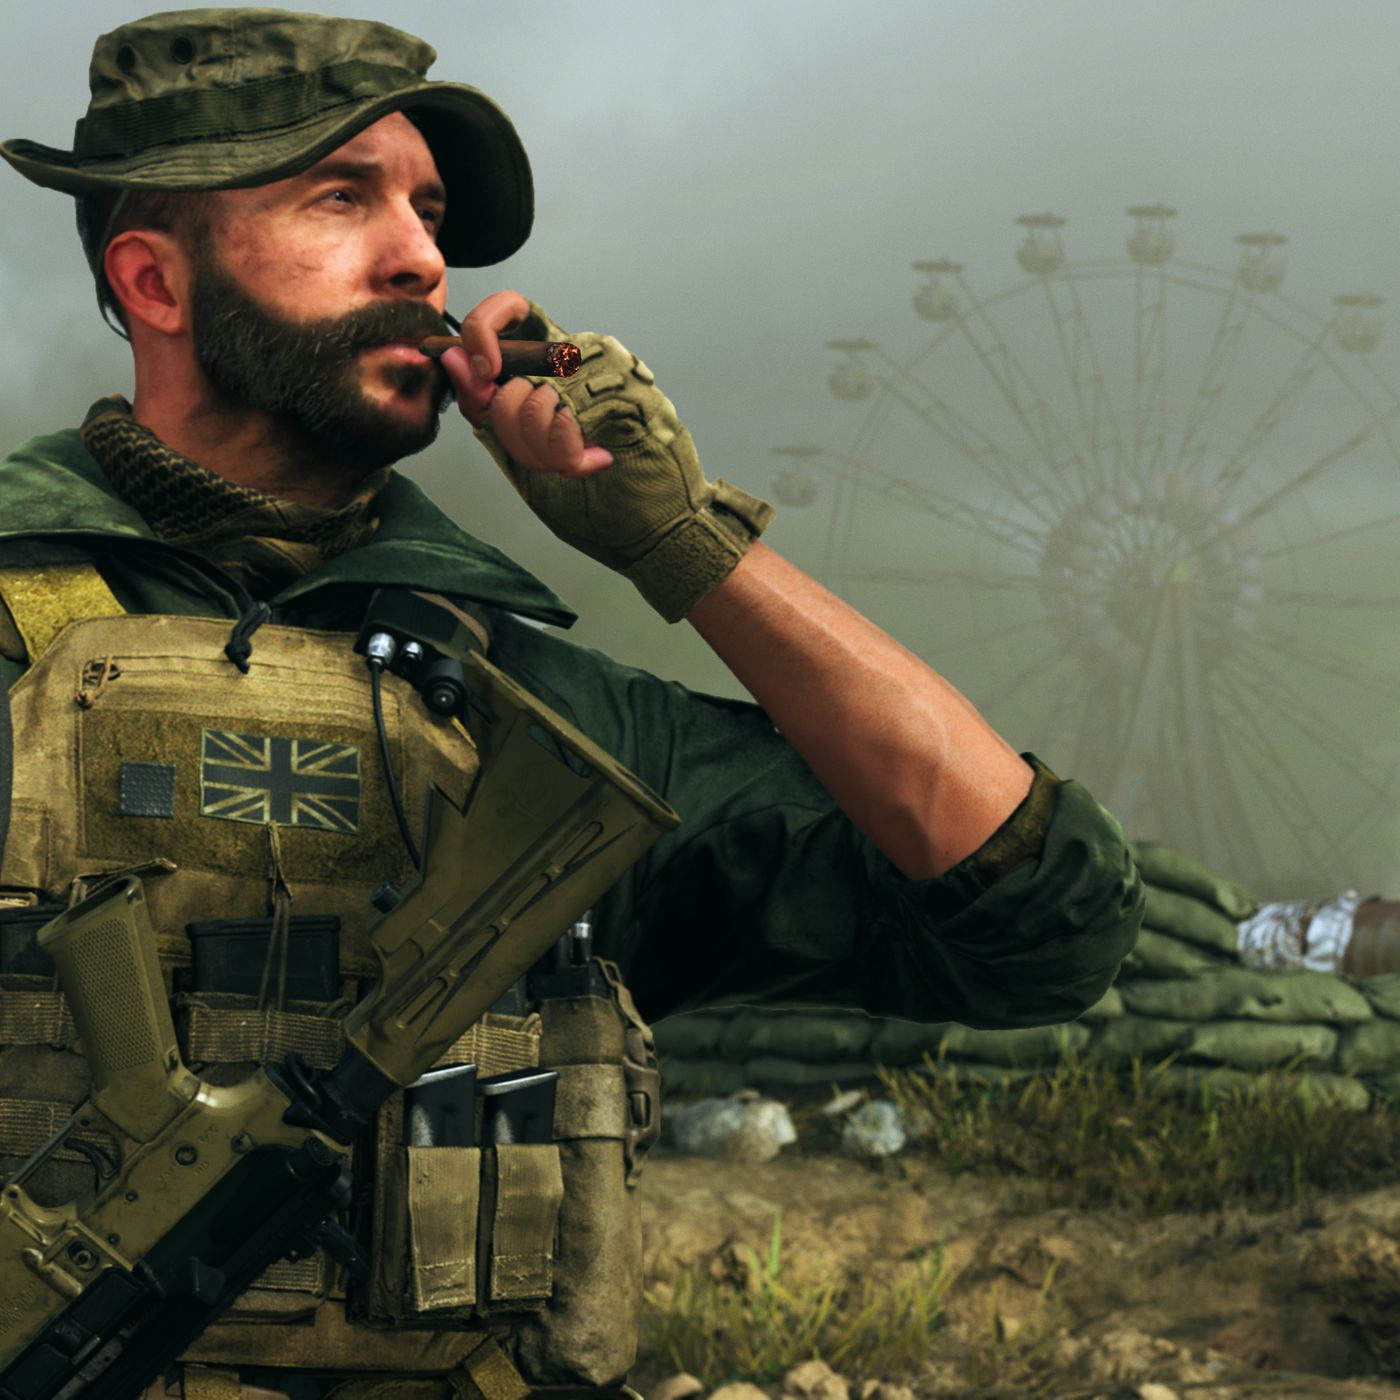 Call Of Duty Modern Warfare Season 4 Launches Today With Captain Price Skin The Verge